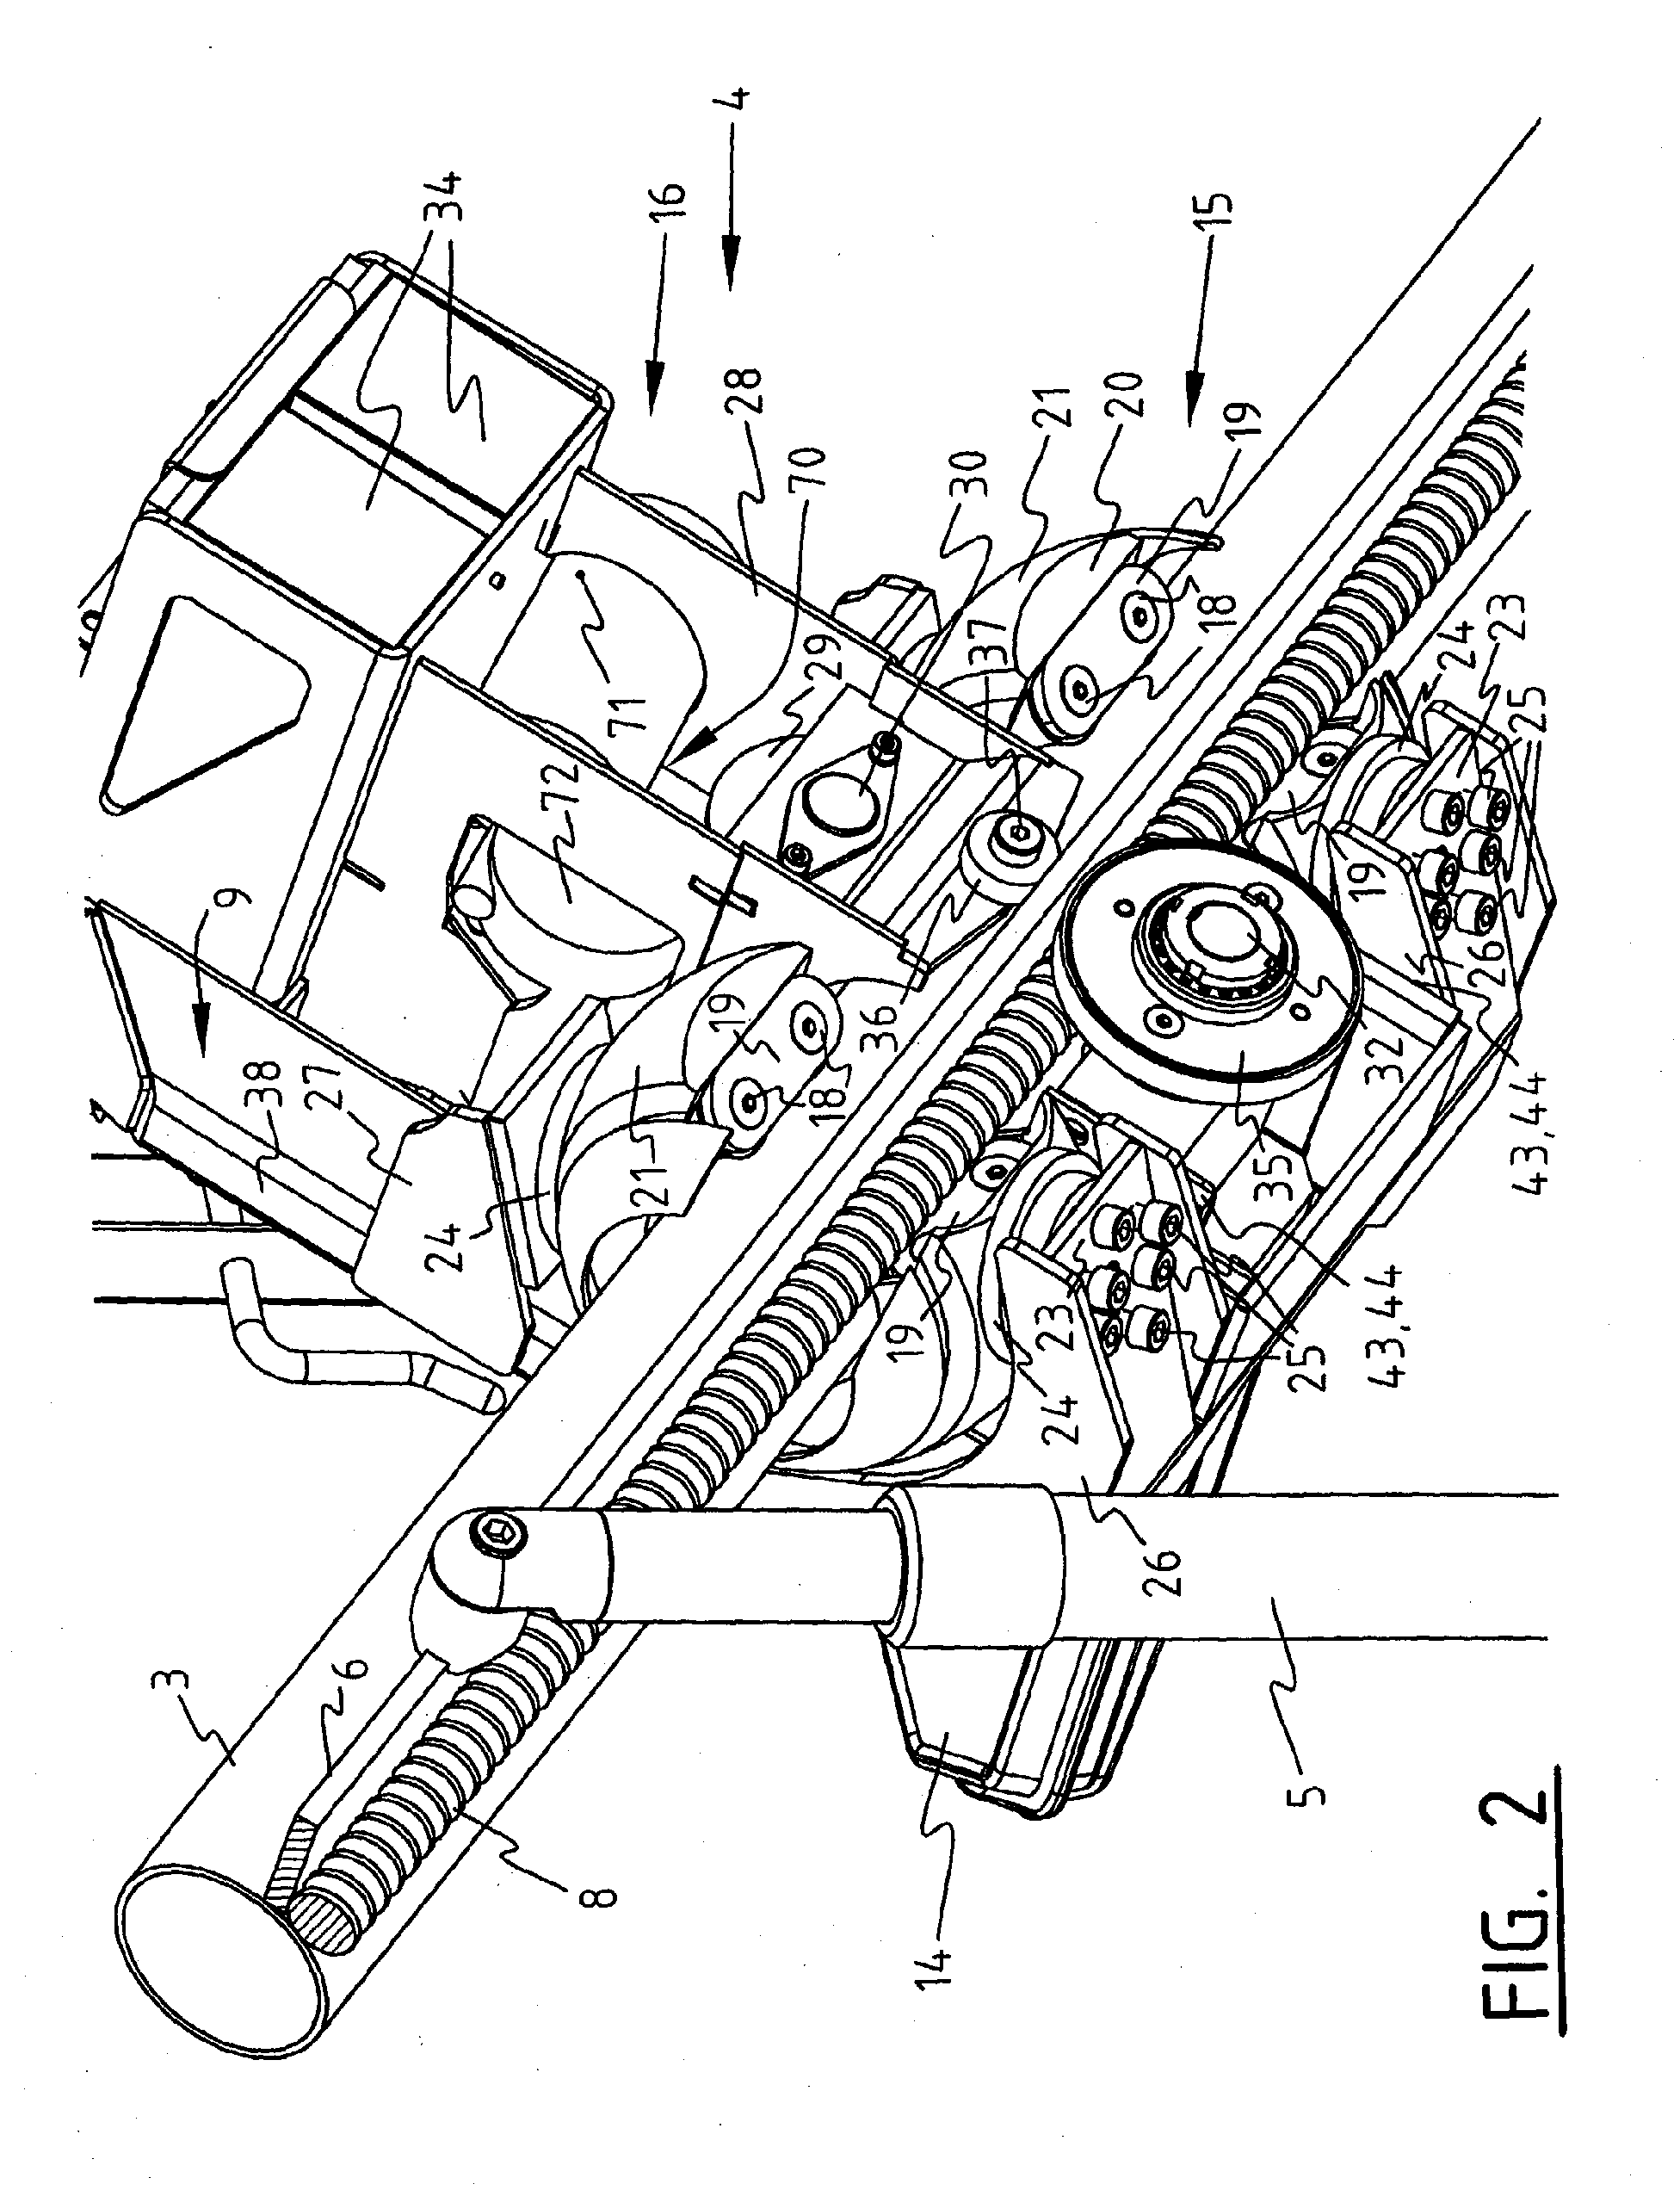 00210001 patent ep1449801a1 drive for a stair lift google patents stannah stair lift wiring diagram at aneh.co